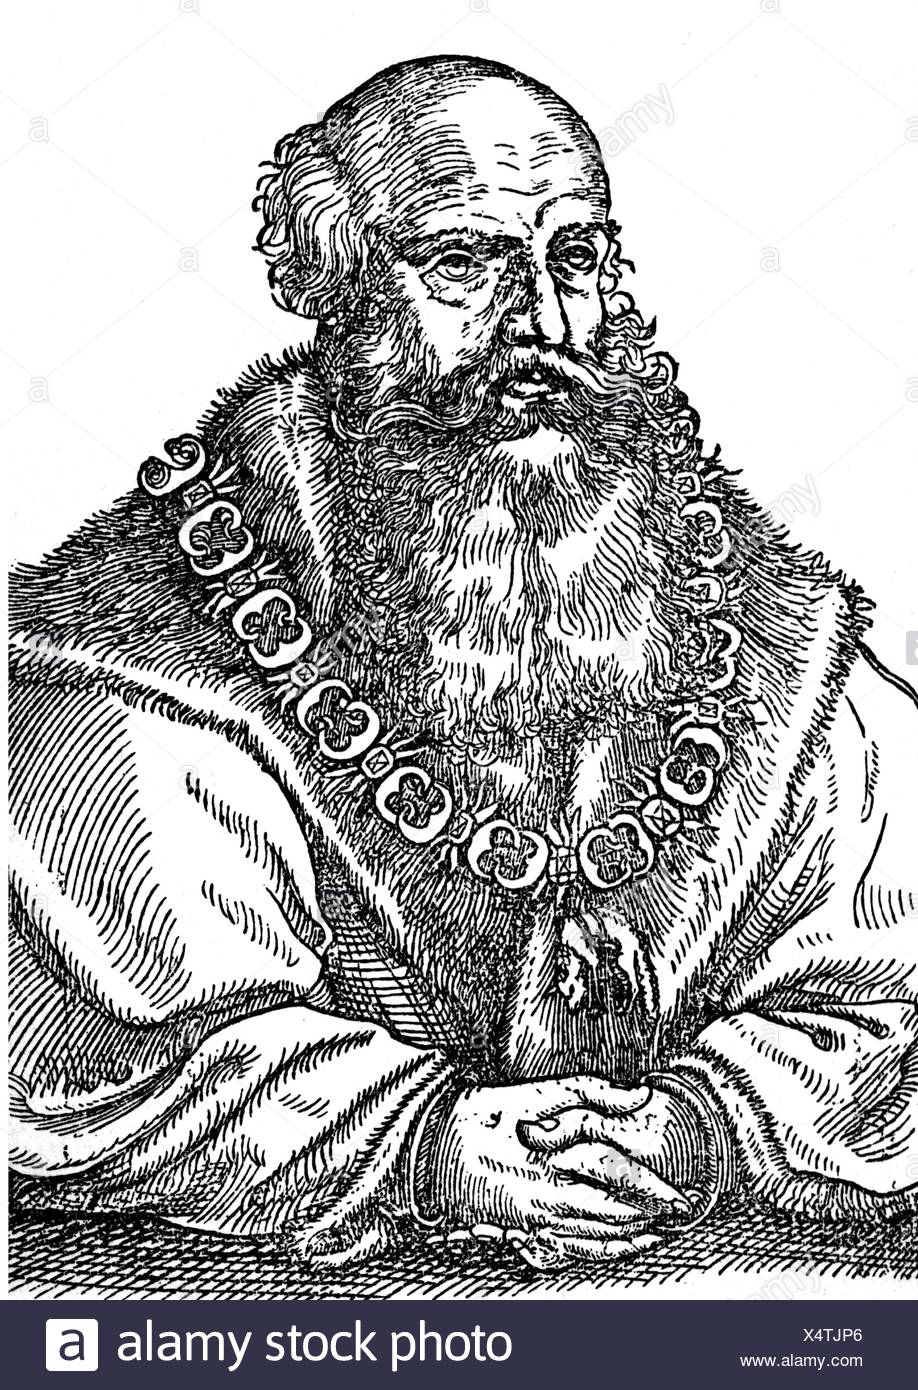 George the Bearded, 27.8.1471 - 17.4.1539, Duke of Saxony 12.9.1500 - 17.4.1539, half length, after woodcut by Cranach, wood engraving, 19th century, Additional-Rights-Clearances-NA - Stock Image